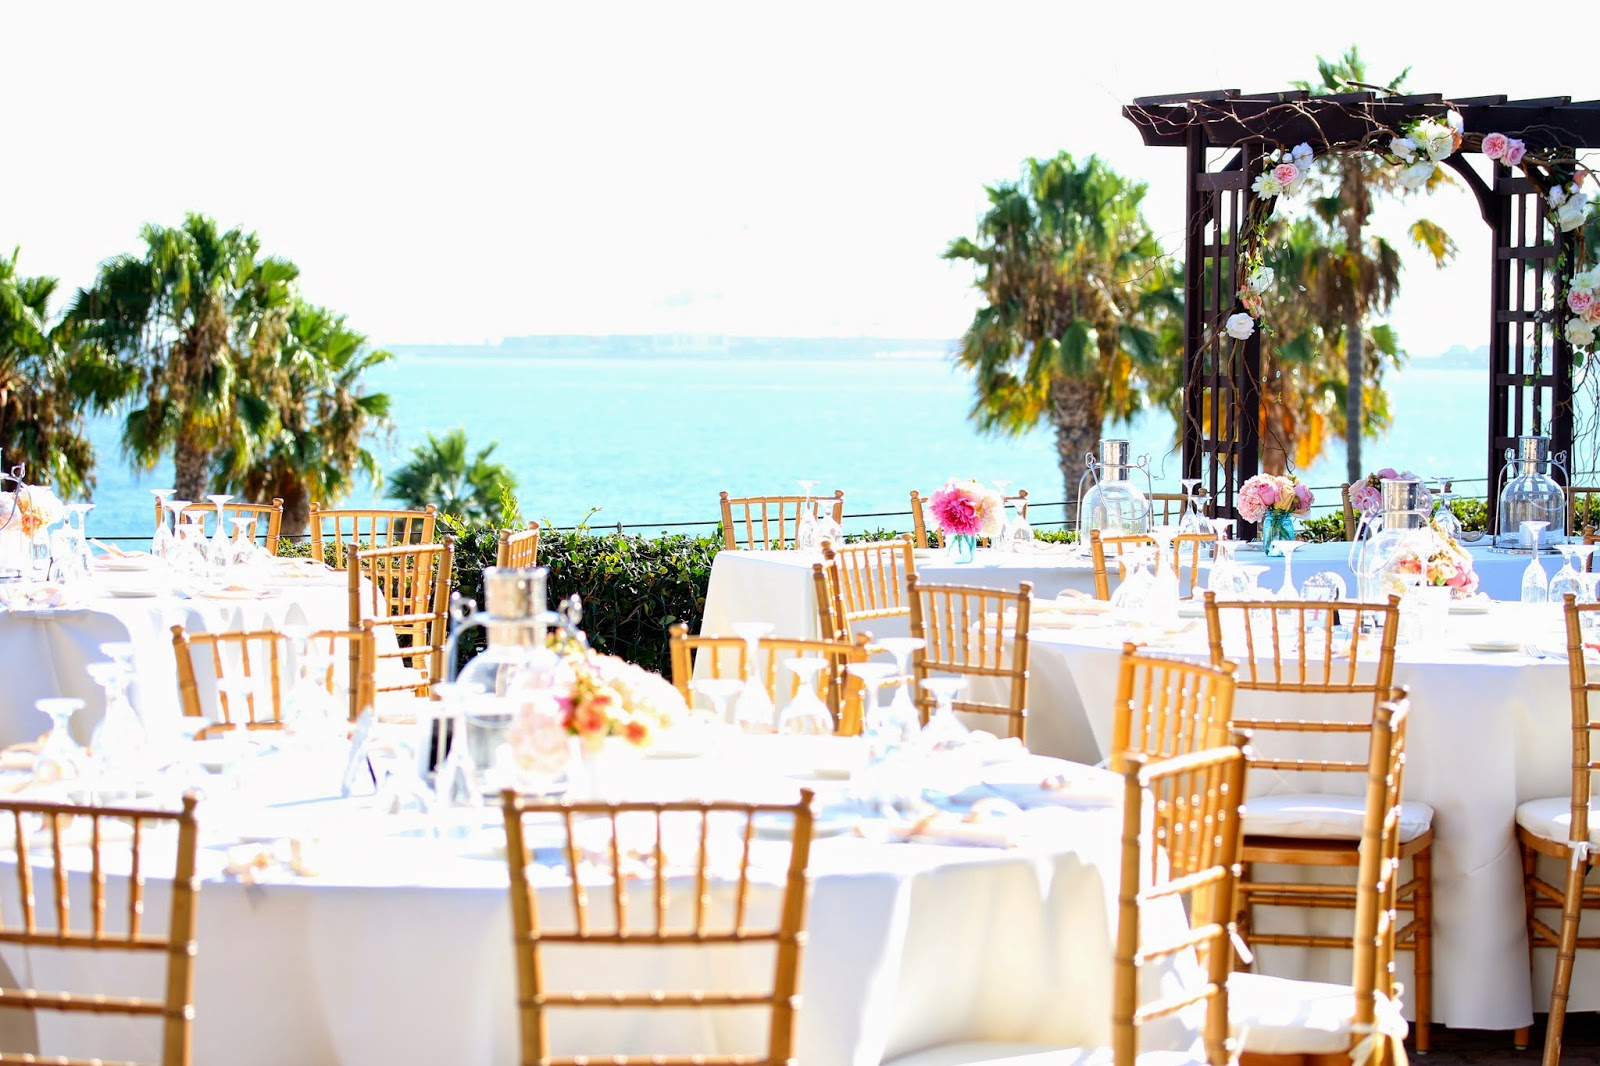 The Long Beach Museum Of Art With Its Charming Historical Buildings And Collections Was Perfect Setting For This Summer Wedding Reception